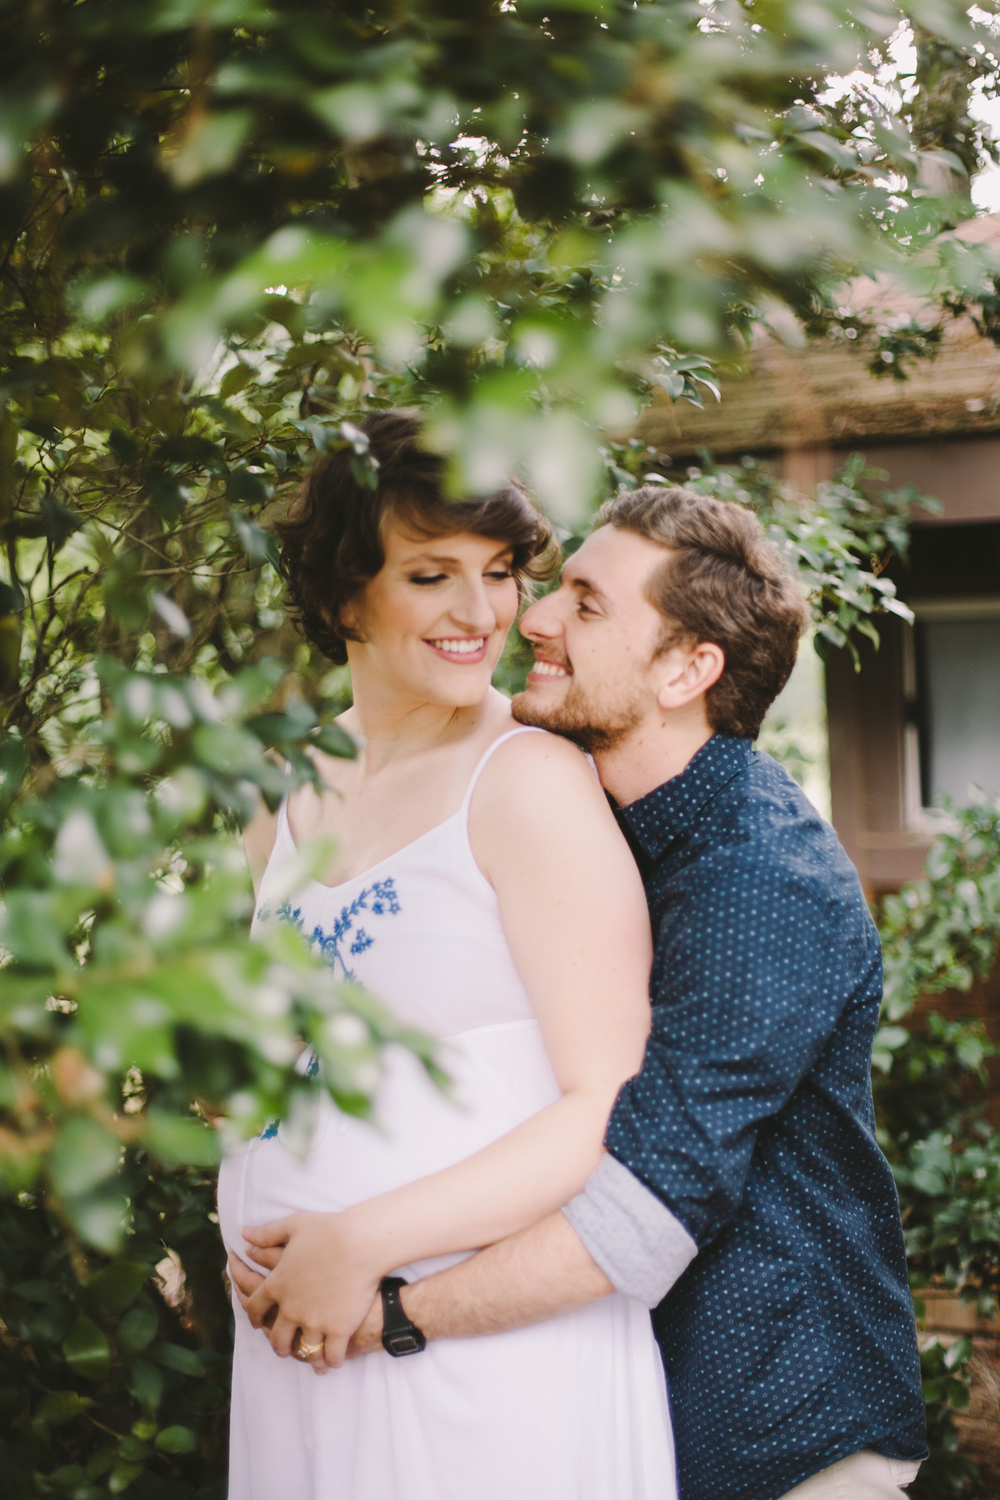 Lydia, Charlie, and Knox Greenwald Maternity Photos Nashville Maternity Photography-8.jpg